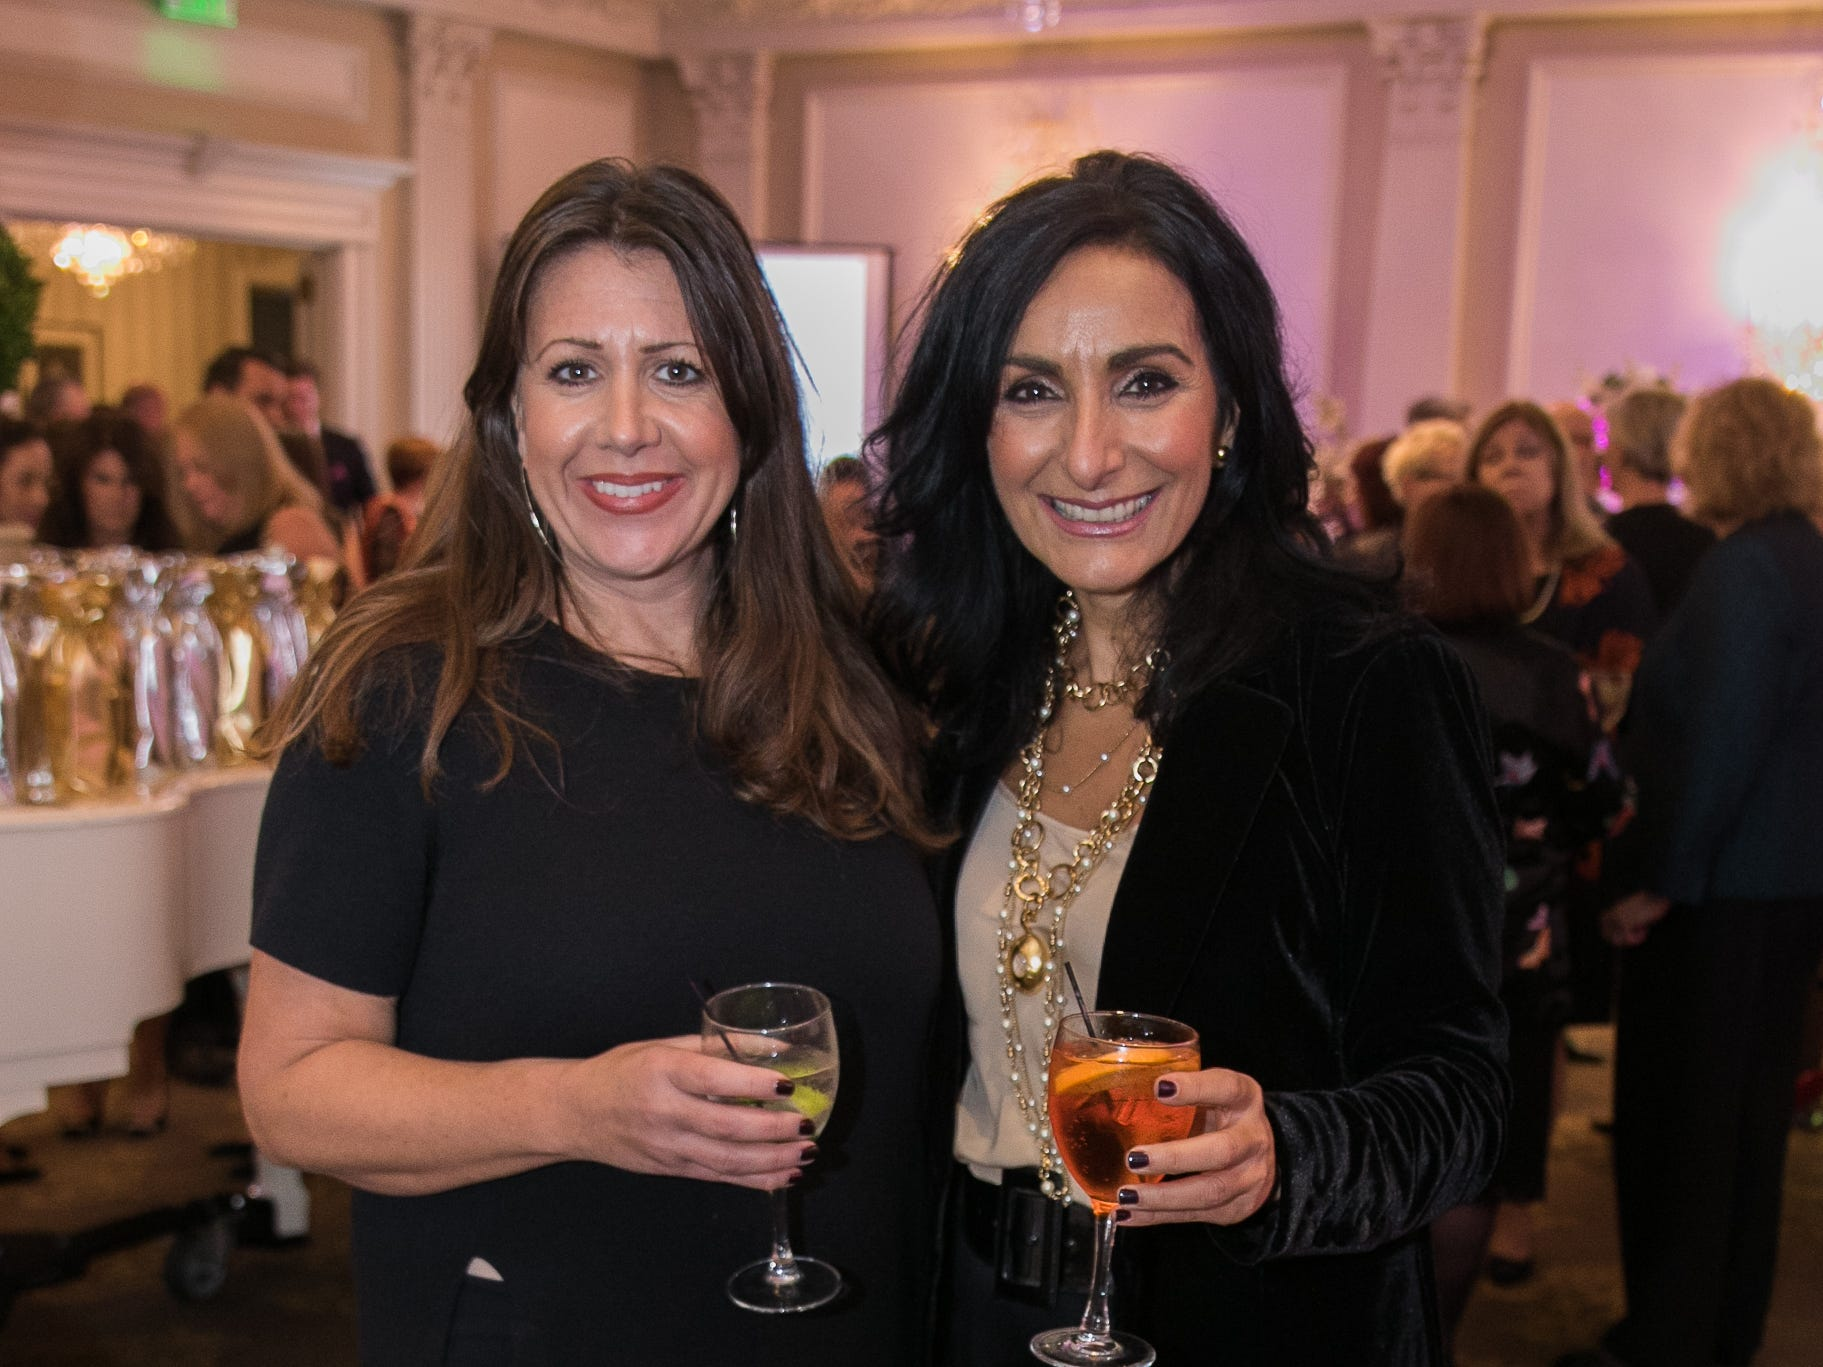 Erinn Wegman, Sonia Minetti. Bergen Family Center celebrated 120 years of service with dinner and a silent auction at Th e Rockleigh Country Club.11/1/2018